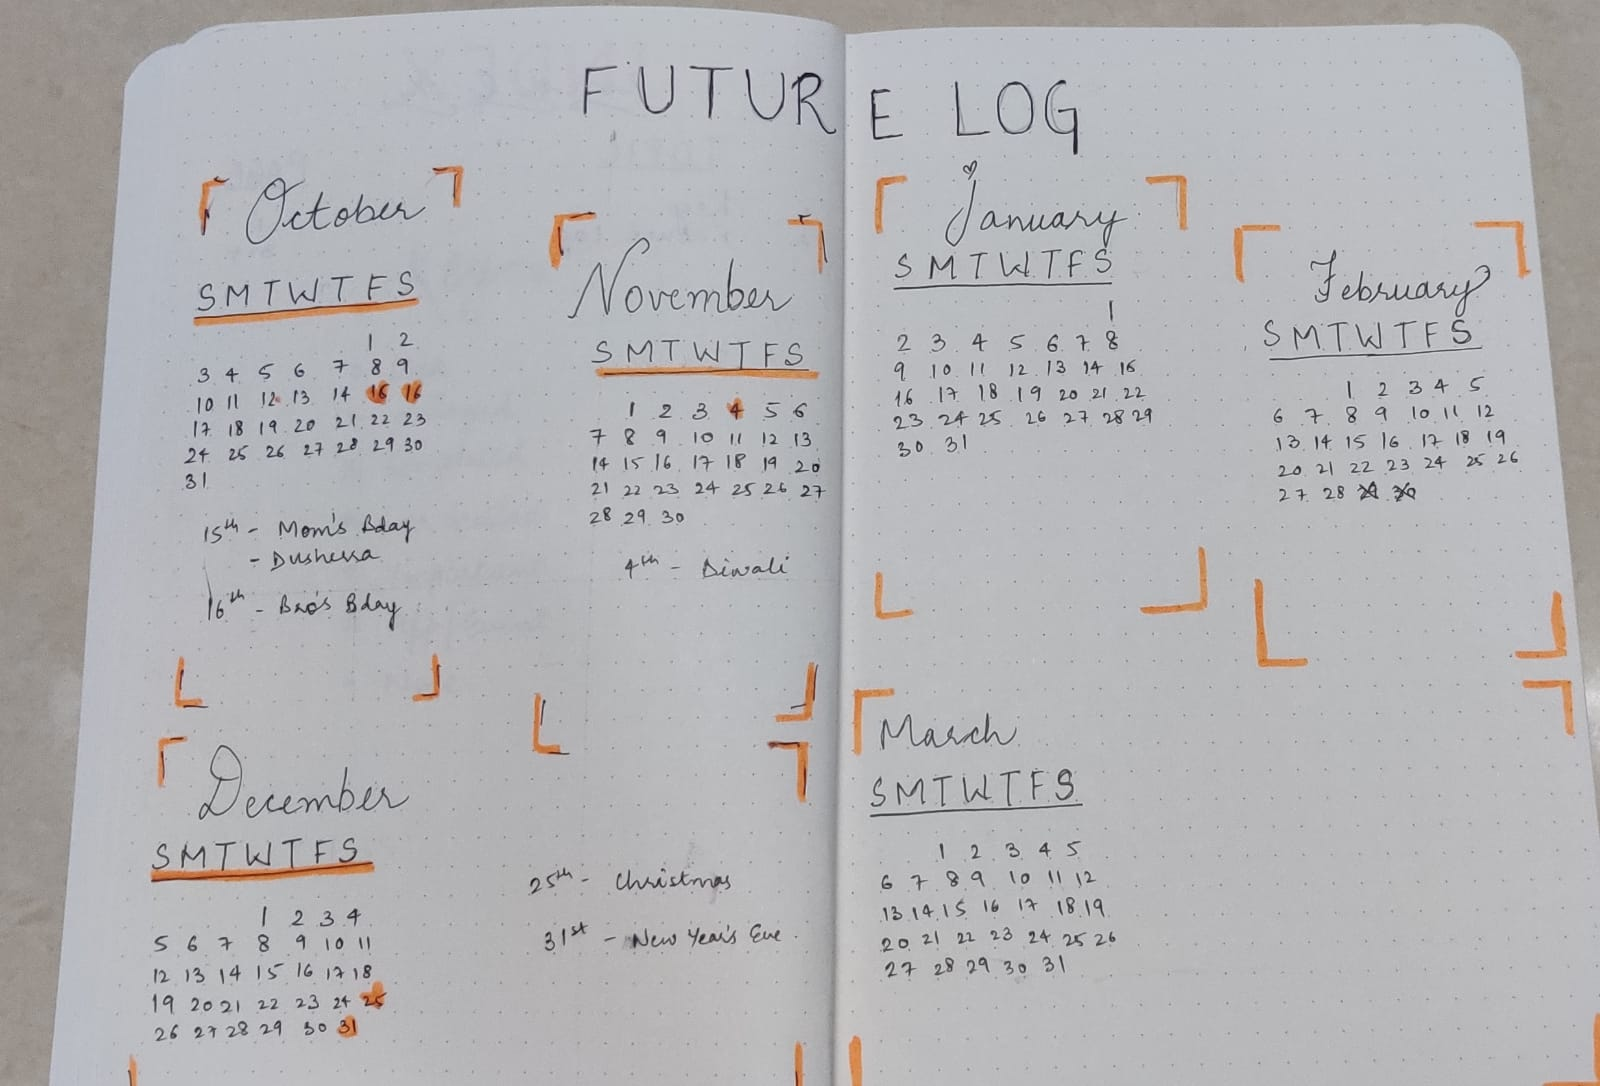 How To Create A Future Log In Bullet Journal (For Beginners)